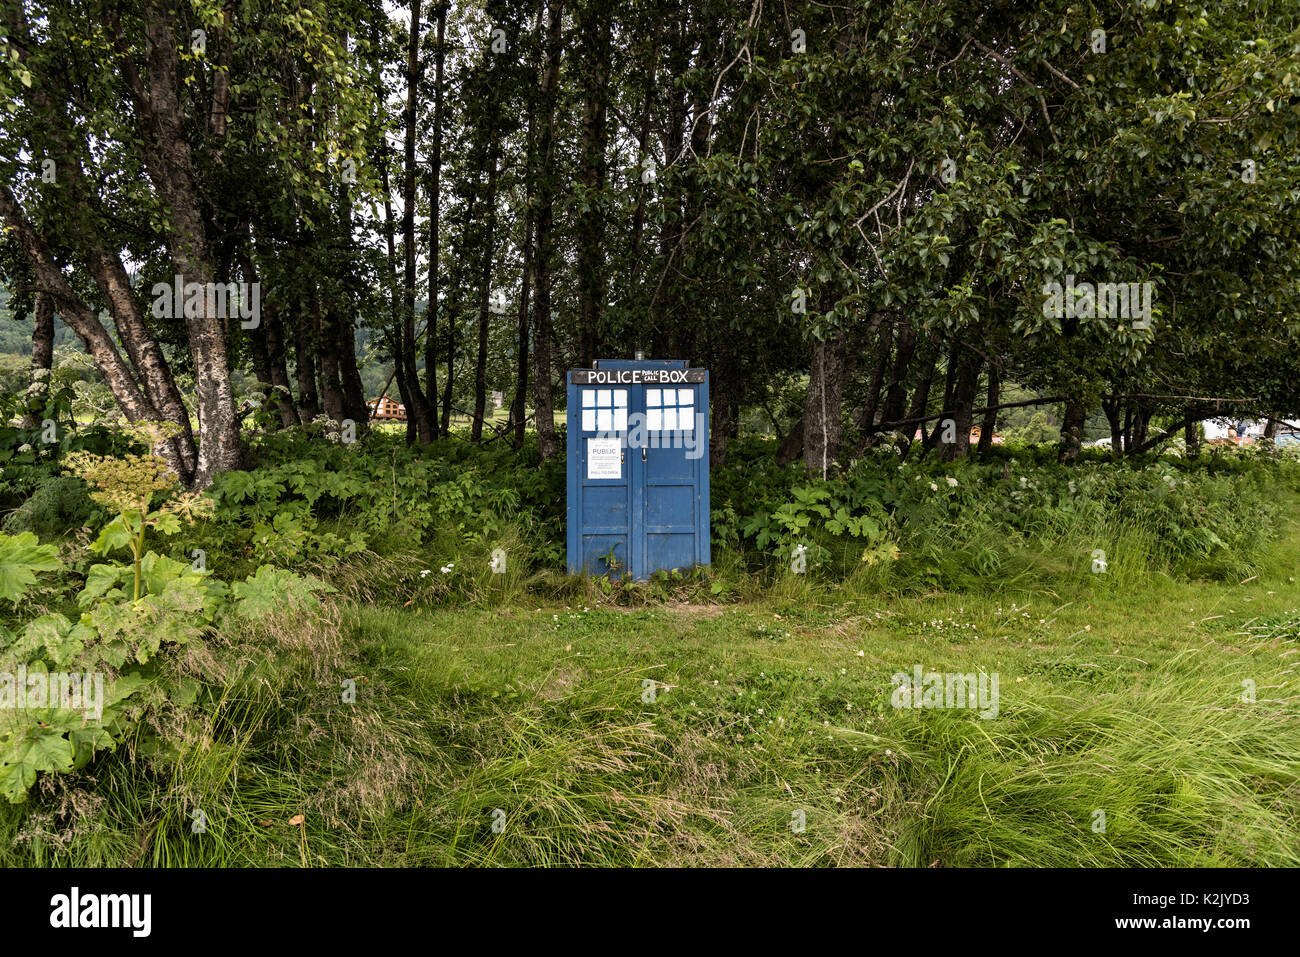 A London Police Public Call Box known by the fictional name of TARDIS from television's Dr Who along the side of the road in remote Homer, Alaska. - Stock Image